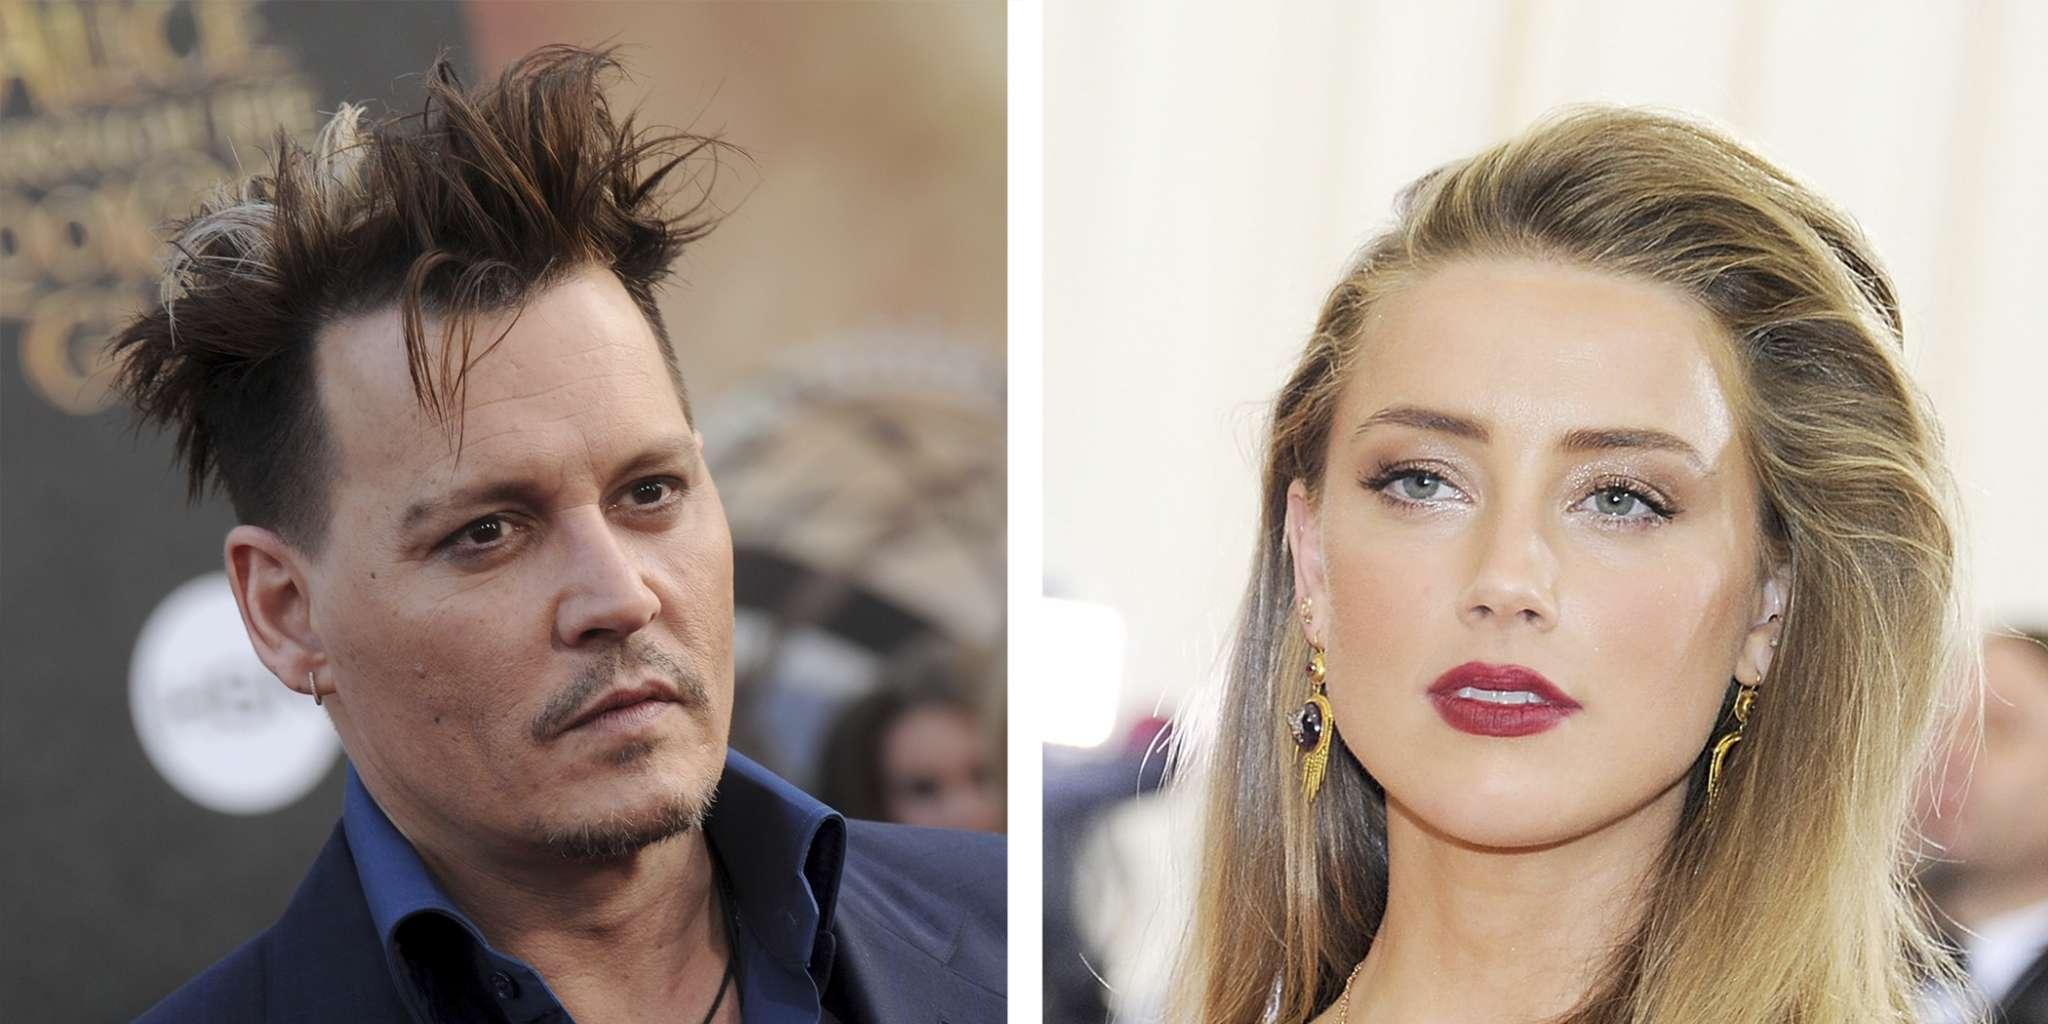 Johnny Depp Vs Amber Heard - The Actor Will Not Rest Until His 'Reputation Is Restored'